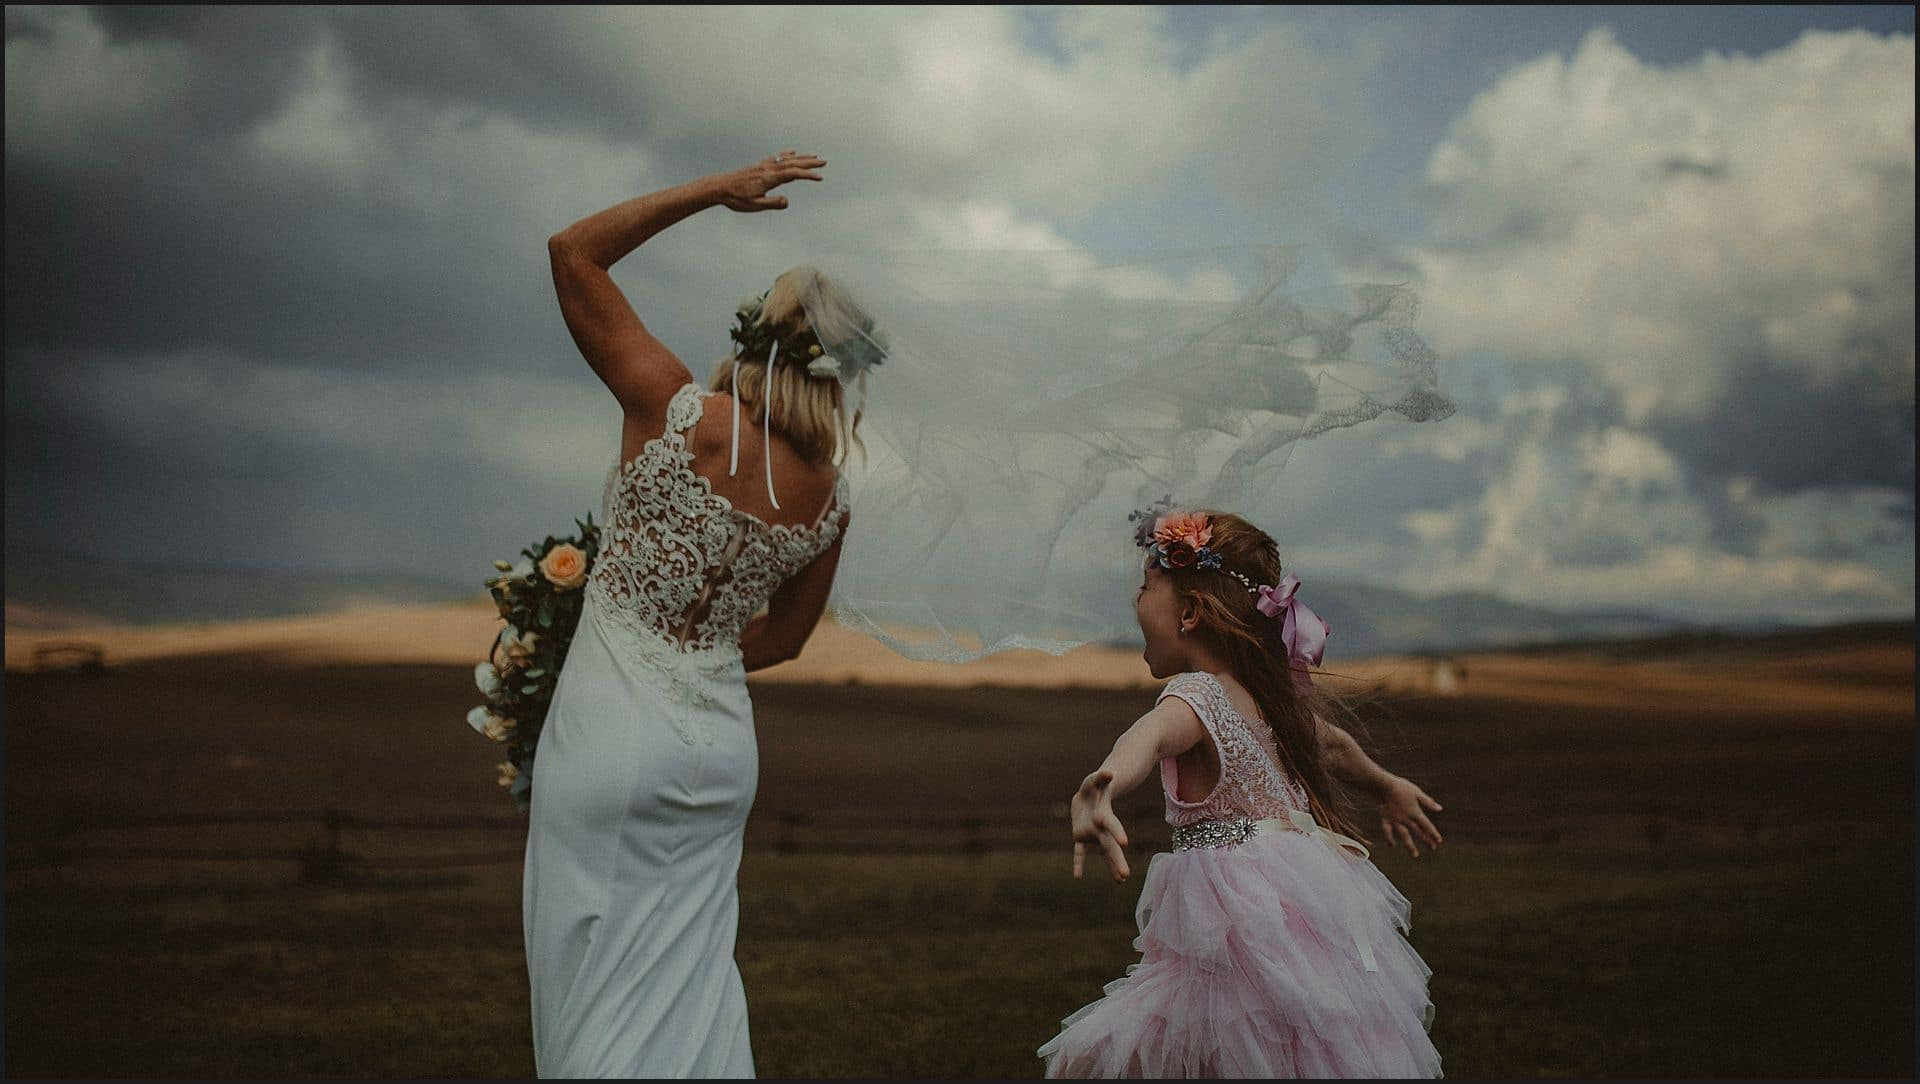 Bride, happy moment, bridemaid, locanda in tuscany, val d'orcia, siena